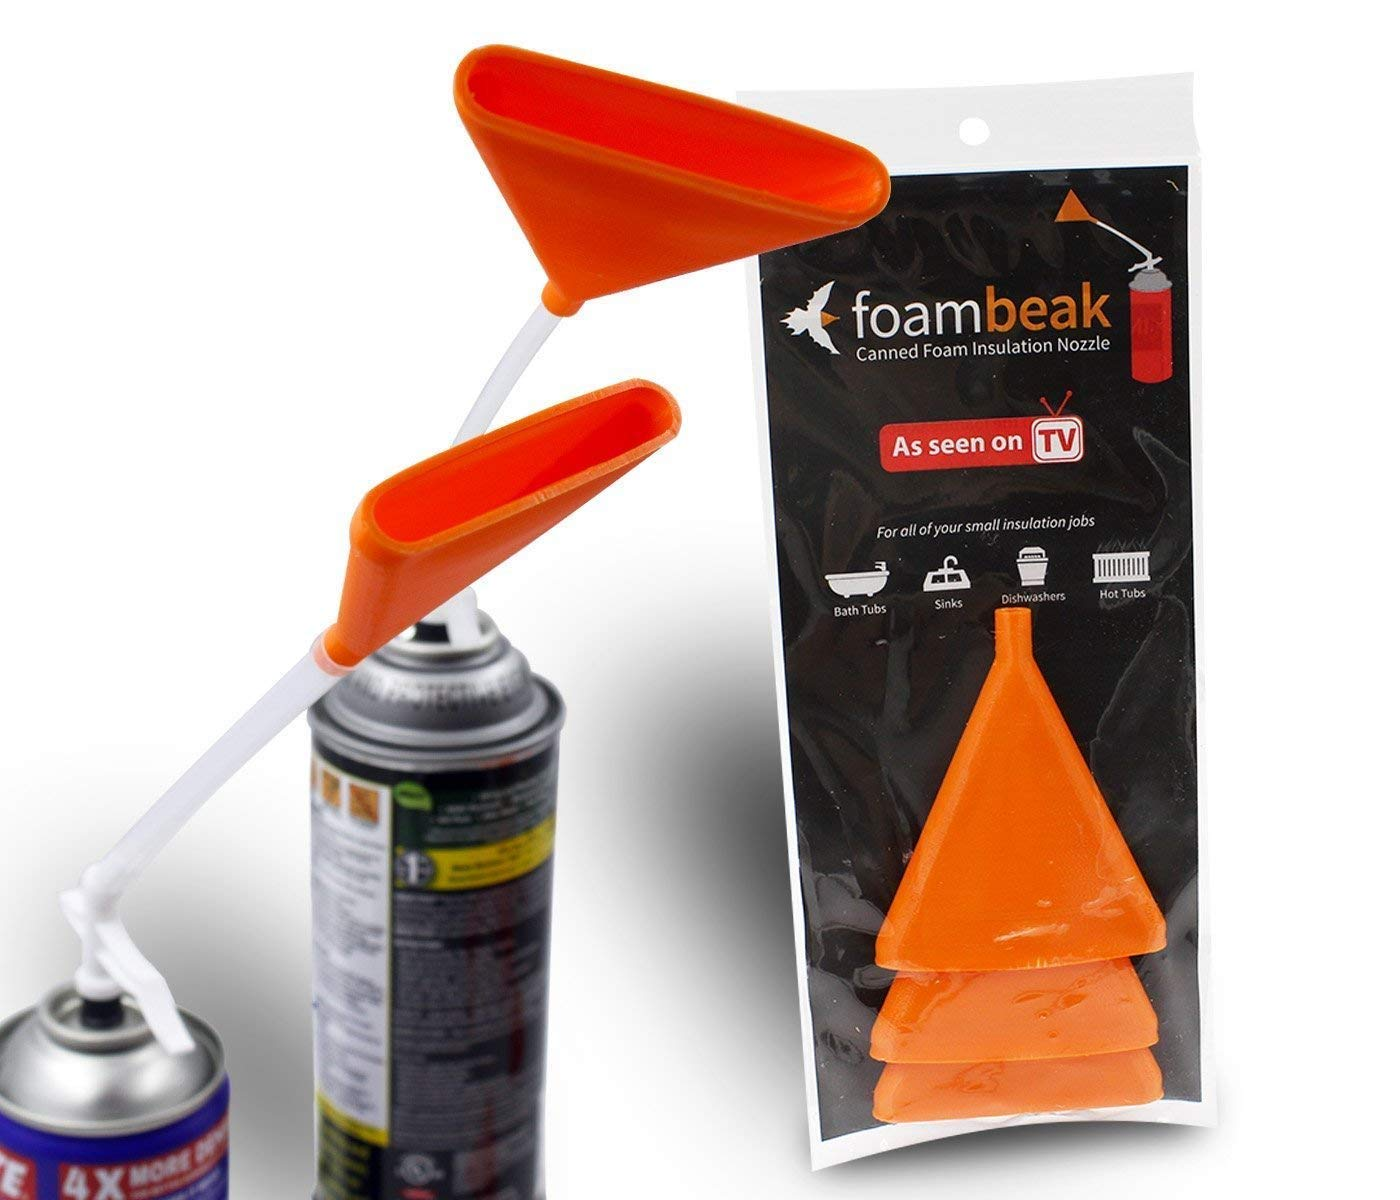 Foambeak Vertical Nozzle For Expanding Foam Insulation | A Spray Foam Insulation Can Nozzle That Widens Insulation Foam Up To 3 Inches. Perfect For Drywall Spray, Foam Spray, Insulation Spray -12 Pack